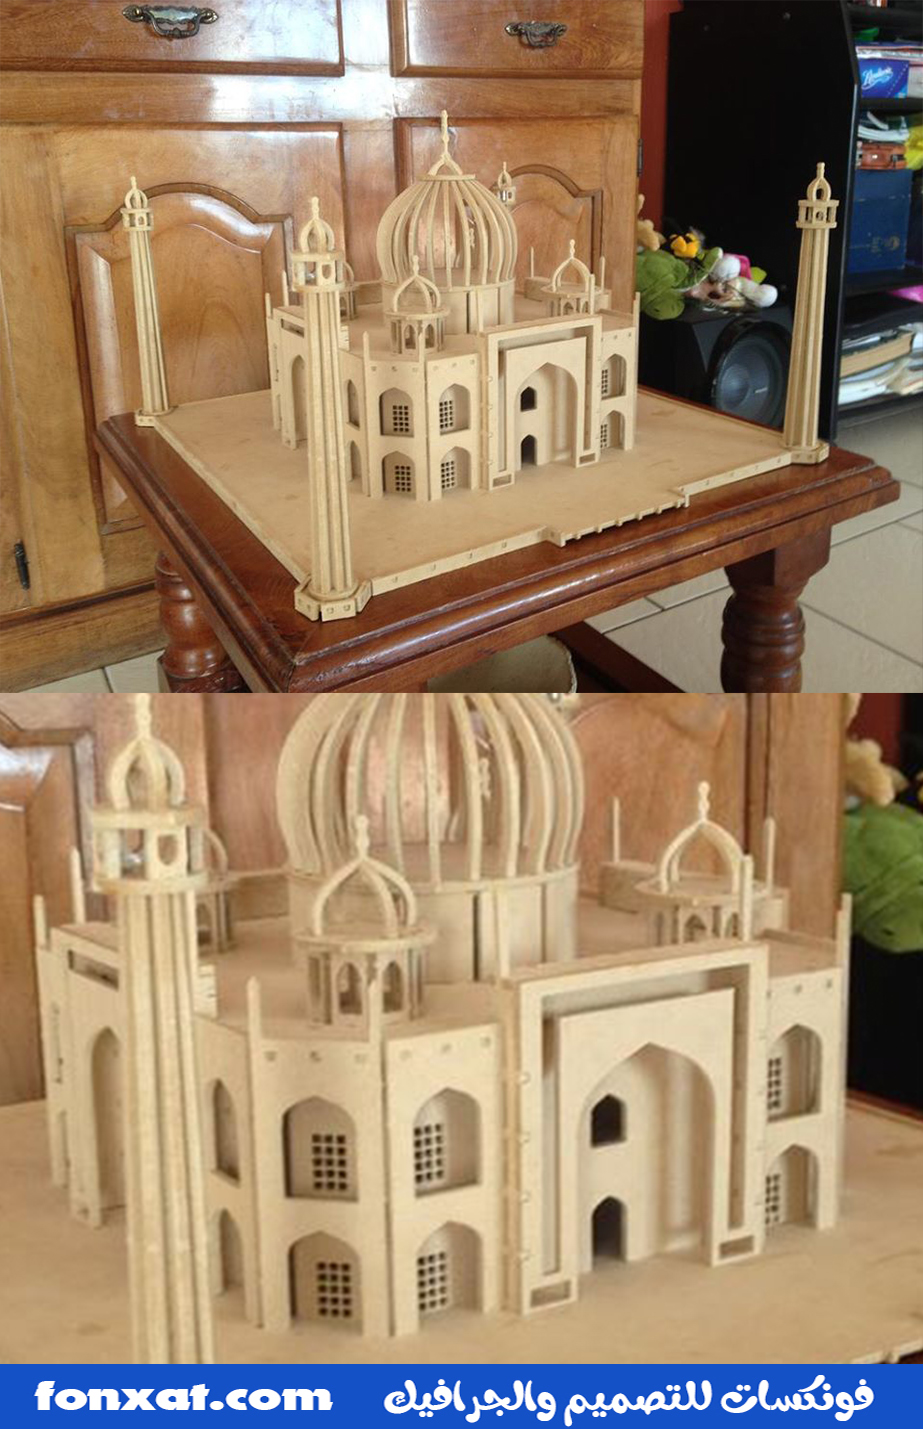 Designing a mosque using laser engraving machines